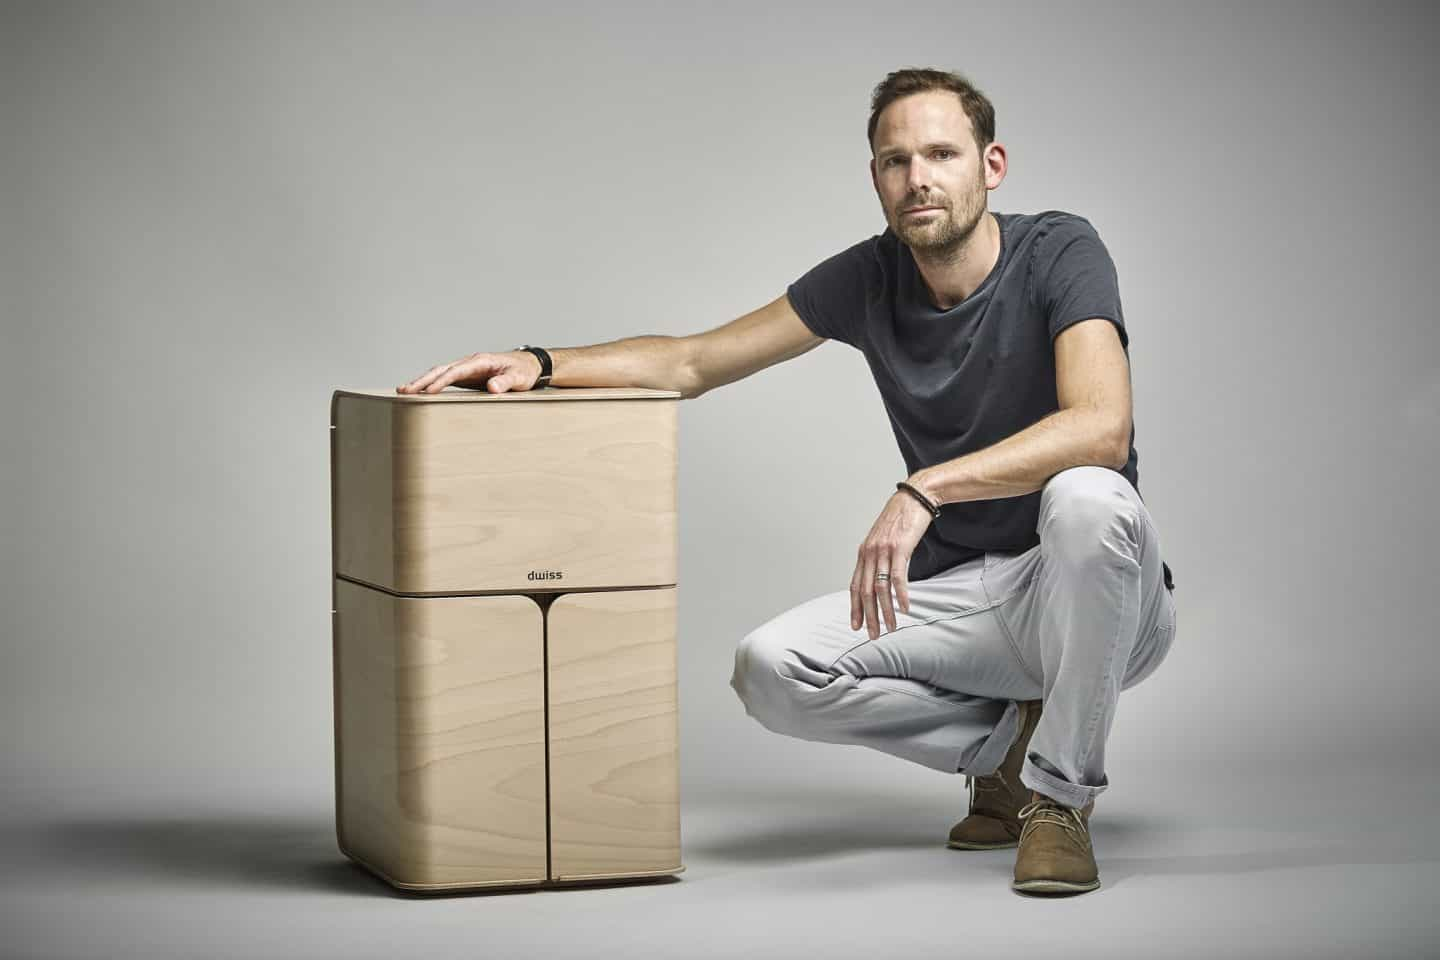 dwiss sustainable plywood recycling bin founder Jon Walker